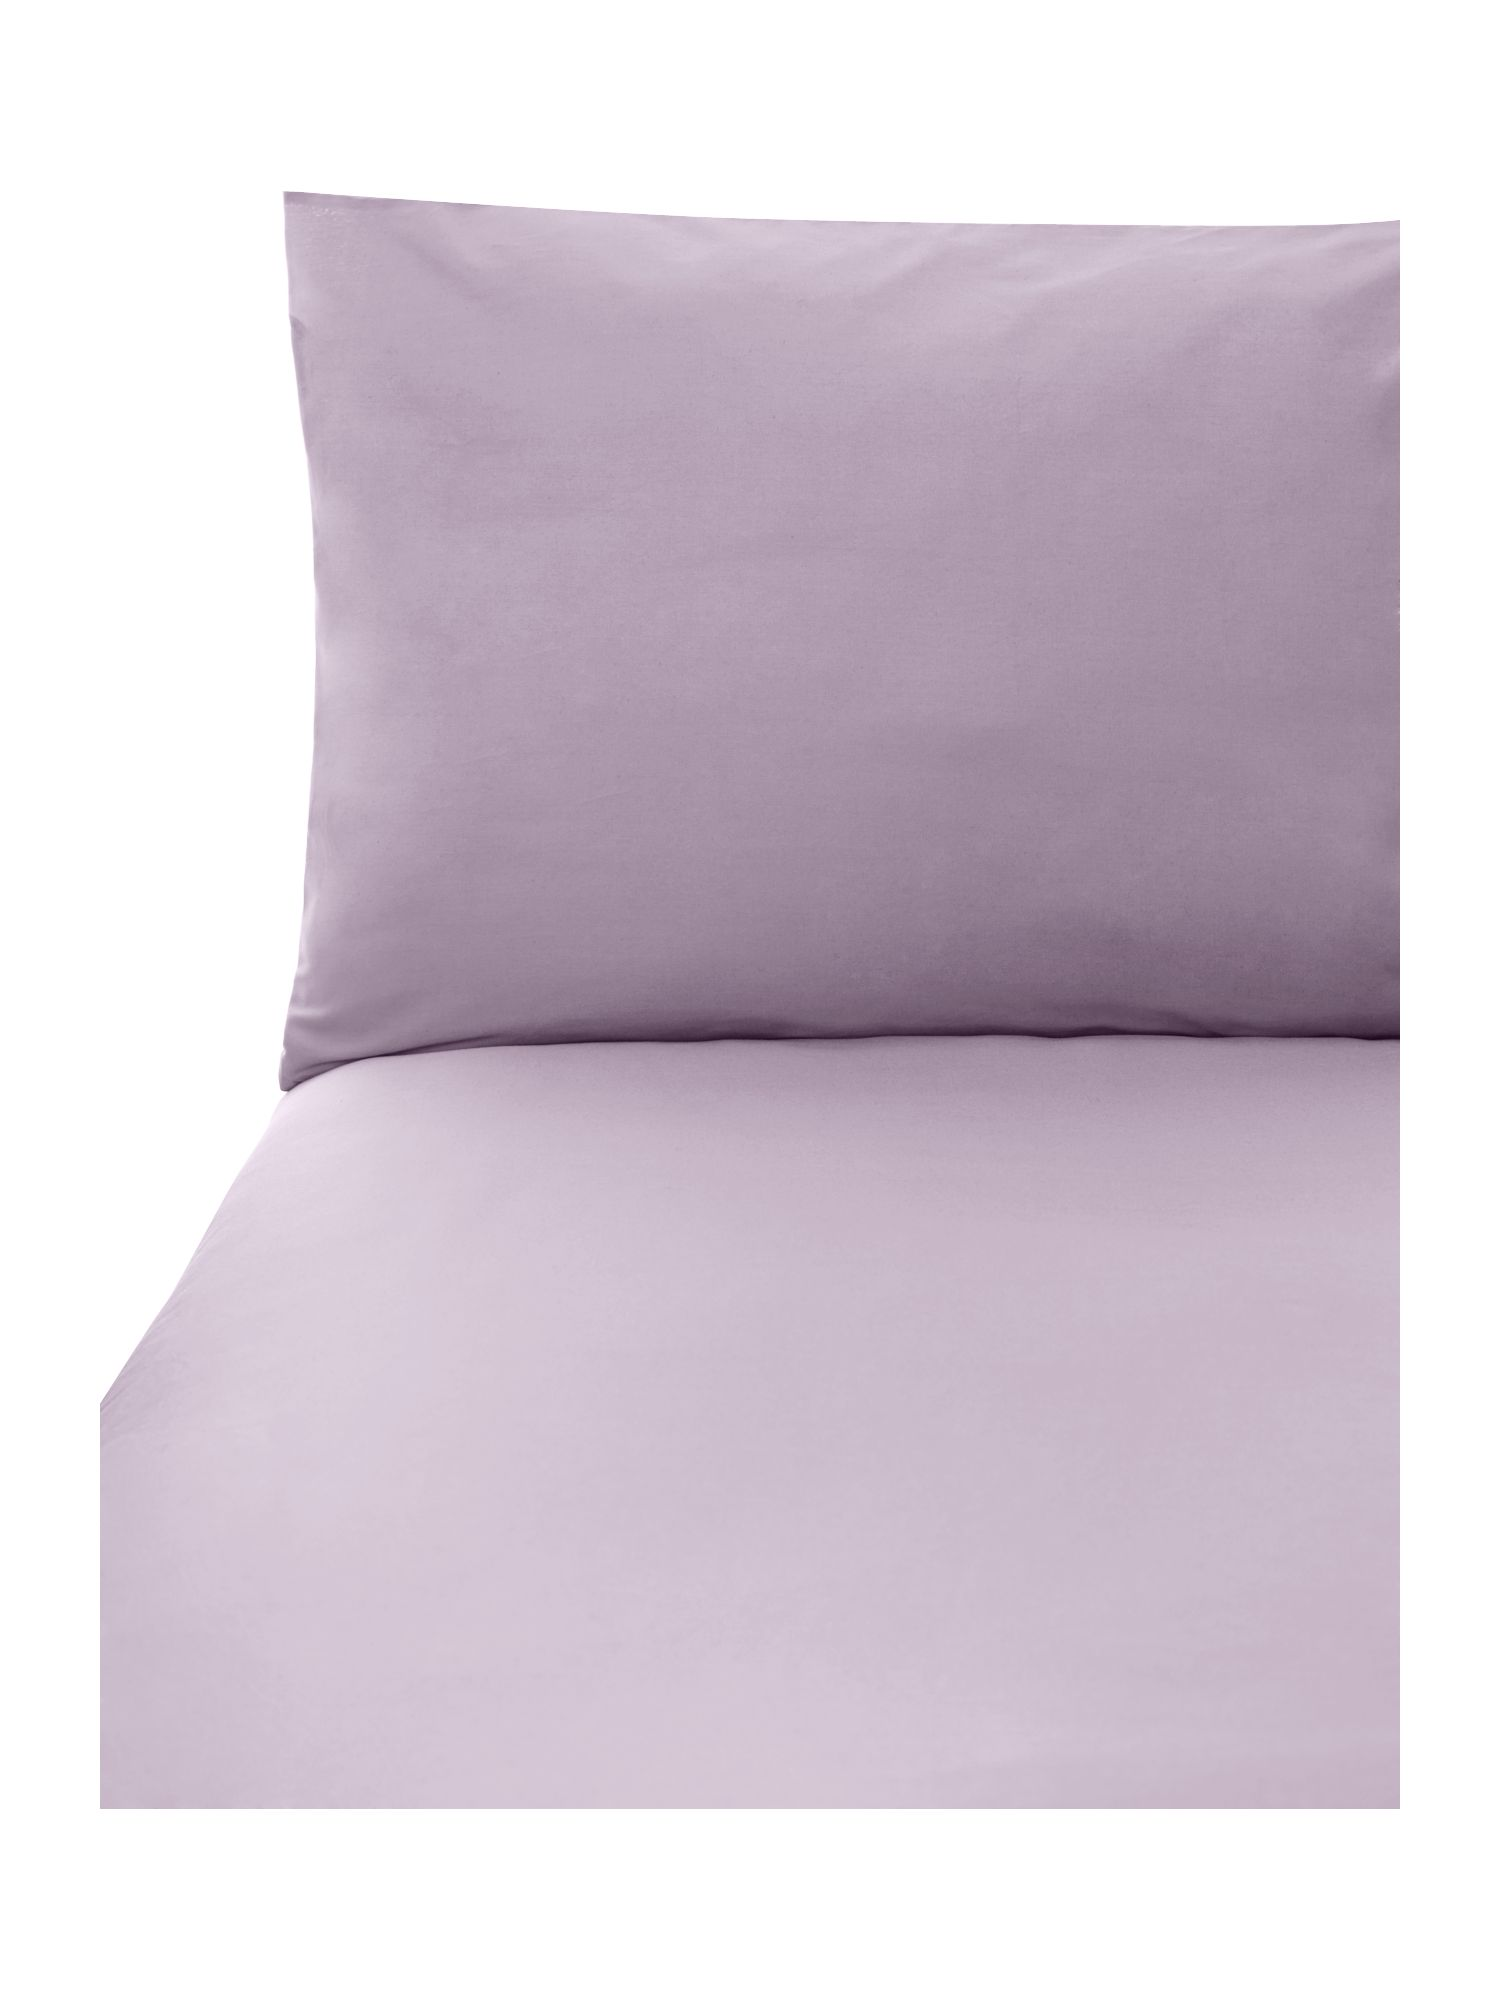 Lilac 100% cotton super king duvet cover